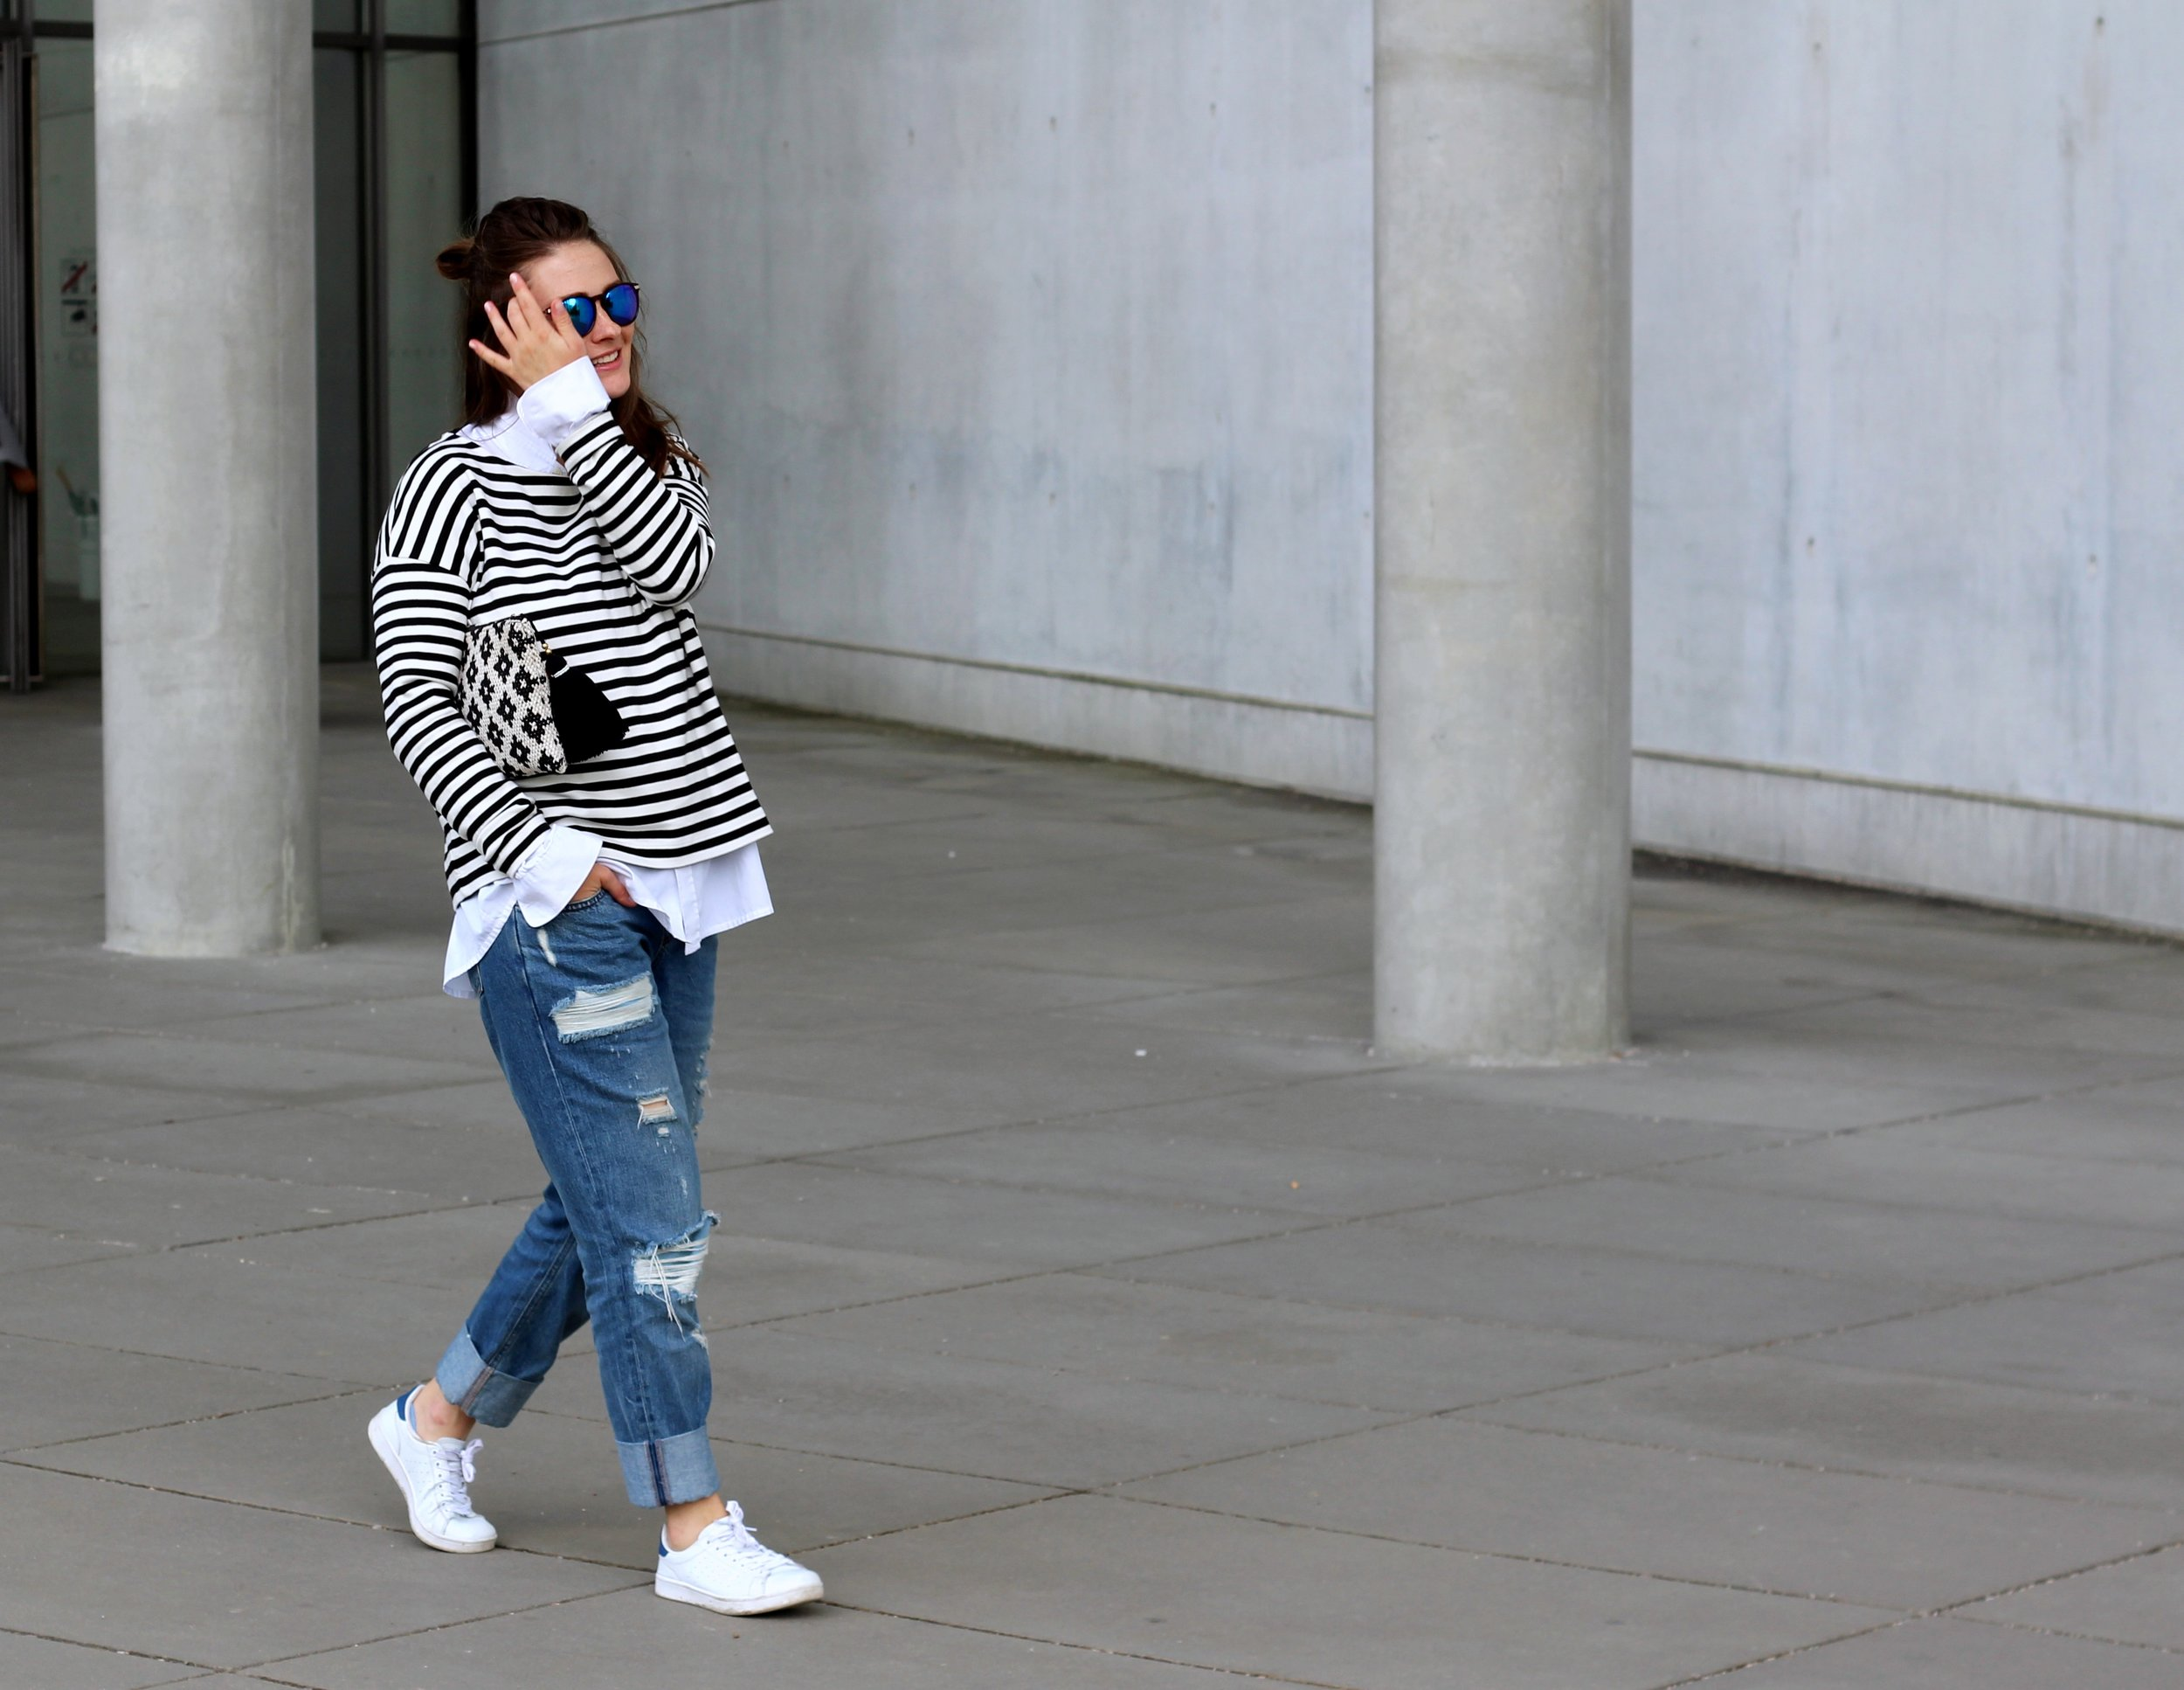 annaporter-classic-outfit-look-jeans-stripes-white-sneakers-asos-mango-clutch-5